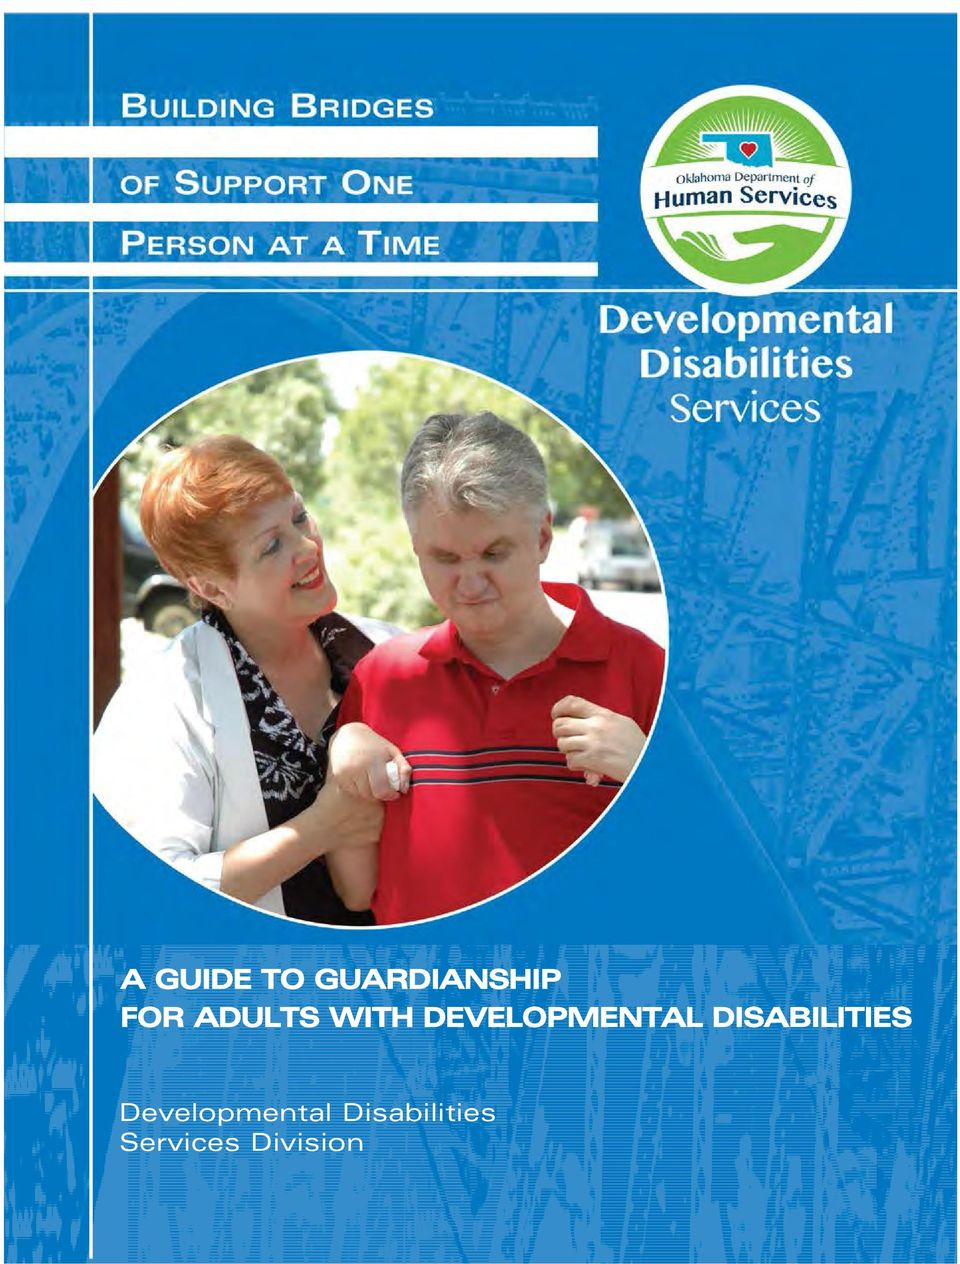 ADULTS WITH DEVELOPMENTAL DISABILITIES